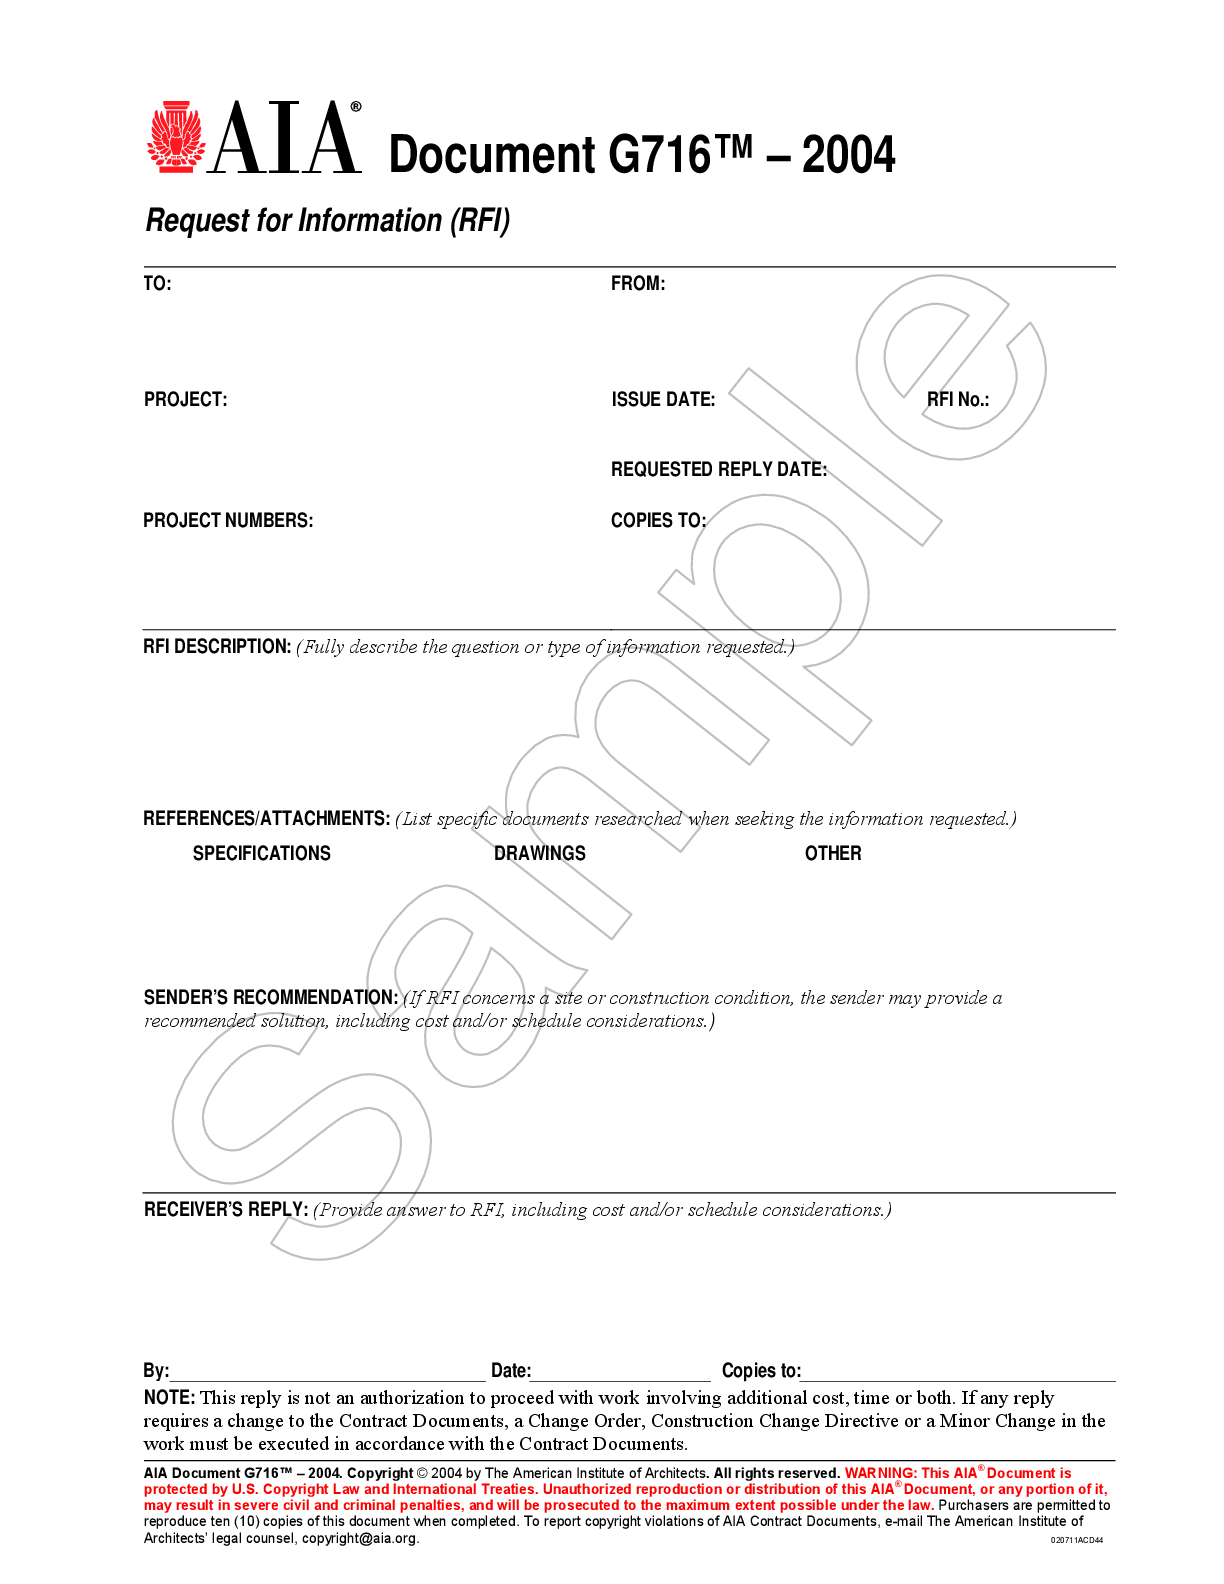 Aia Document Download